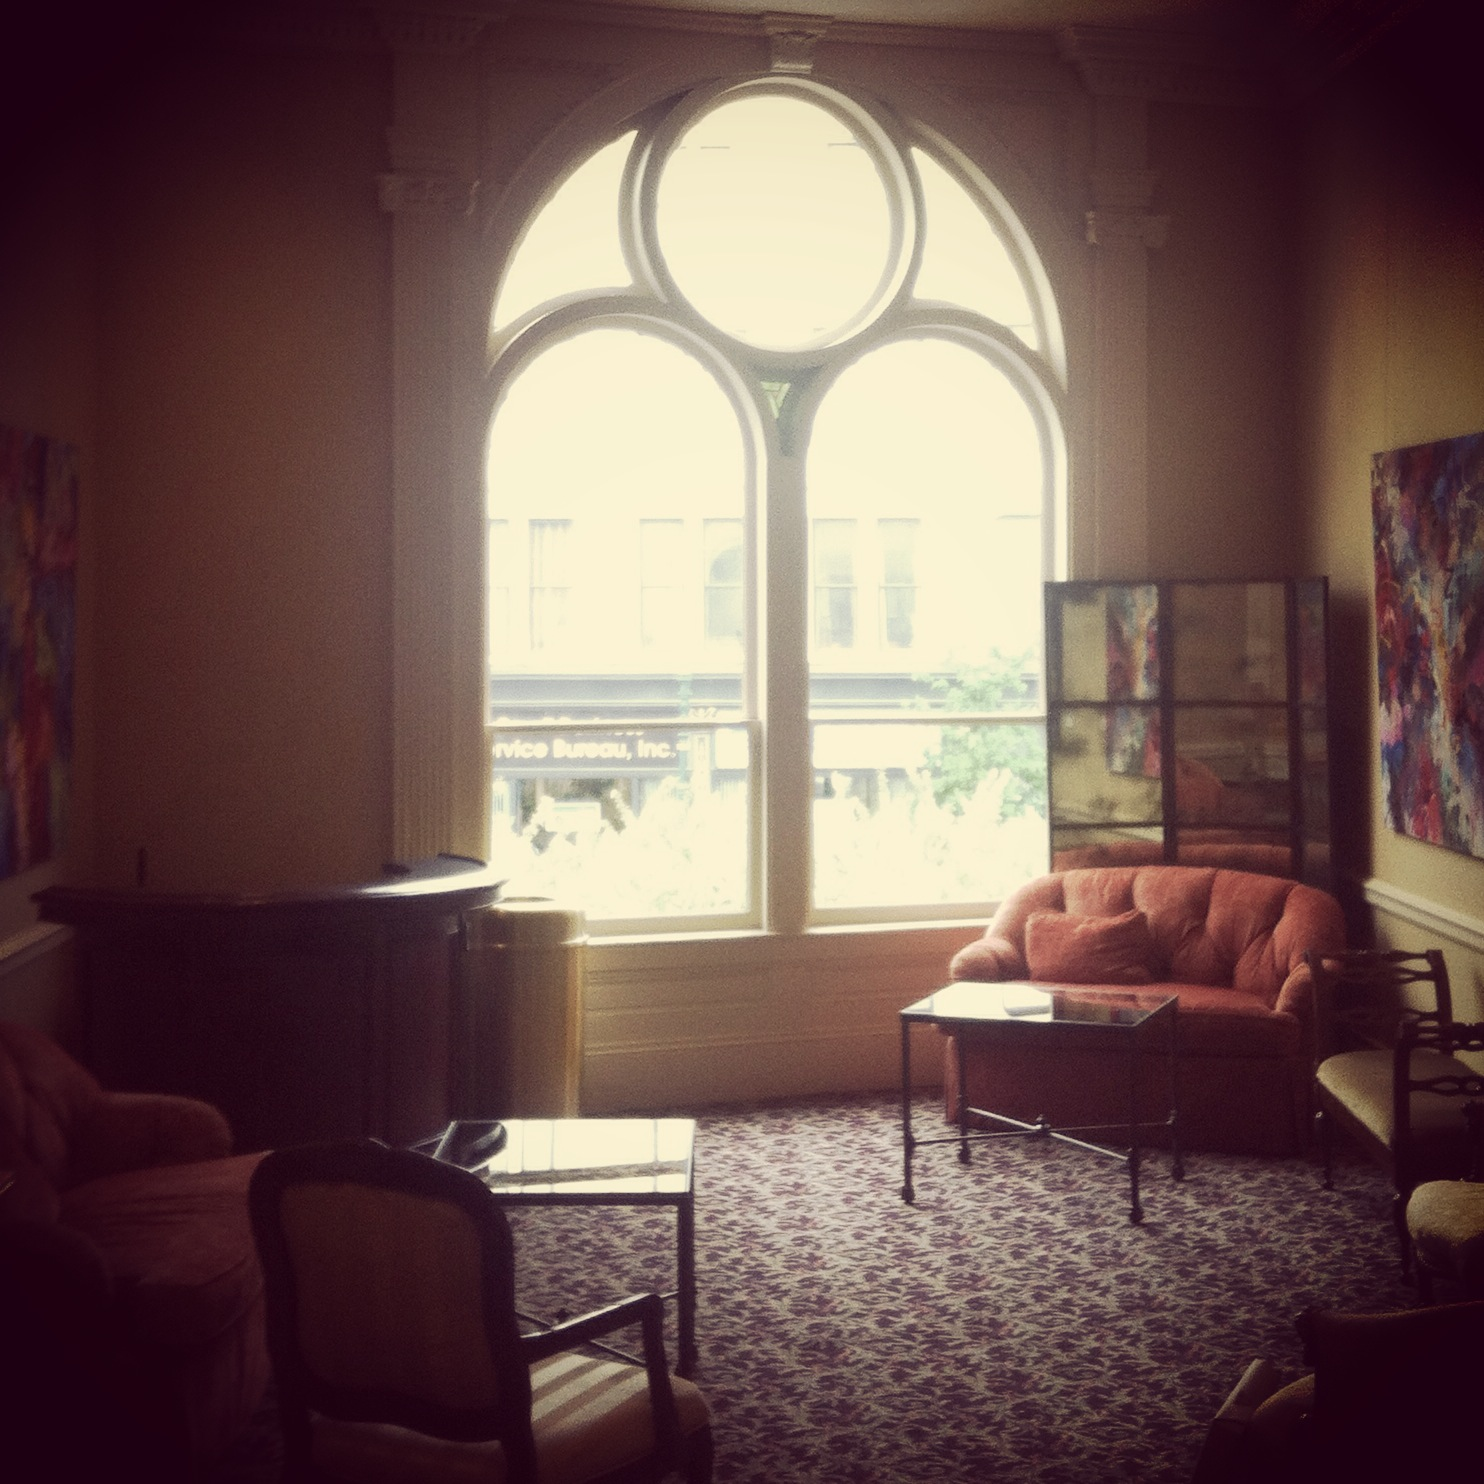 The space where my Beasts series will hang come October: the Vip room in the Hanover Theatre, Worcester, MA USA